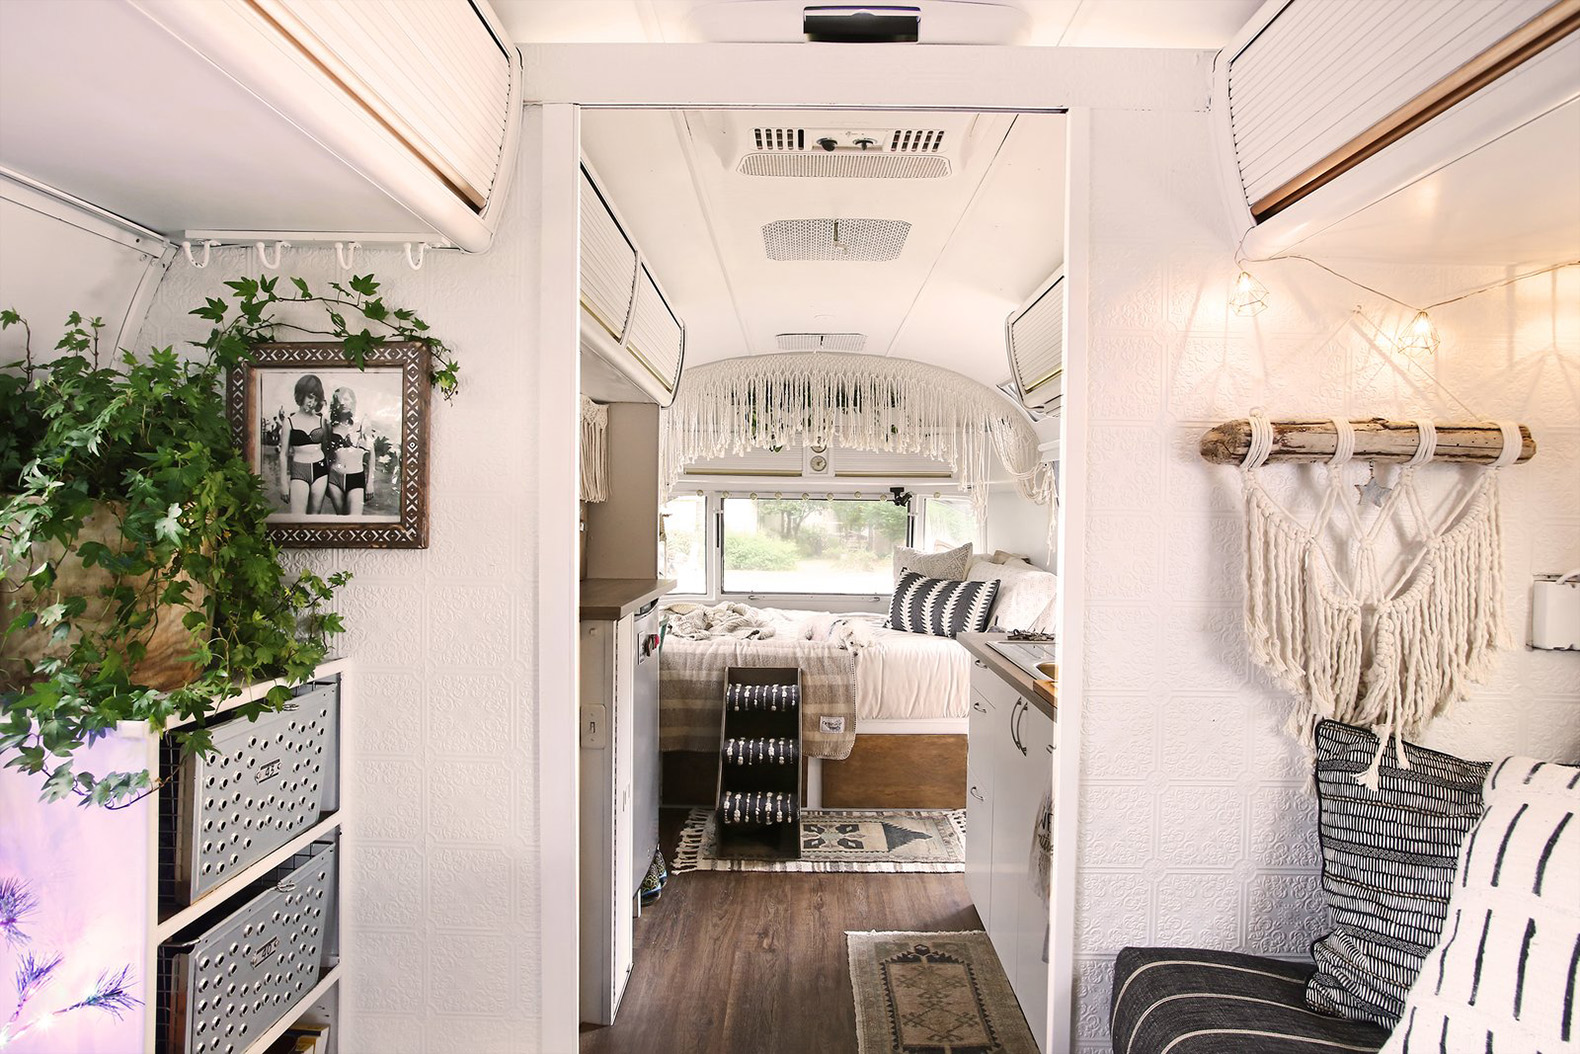 Small Airstream Trailer >> This adventurous couple revamped an old Airstream into a ...